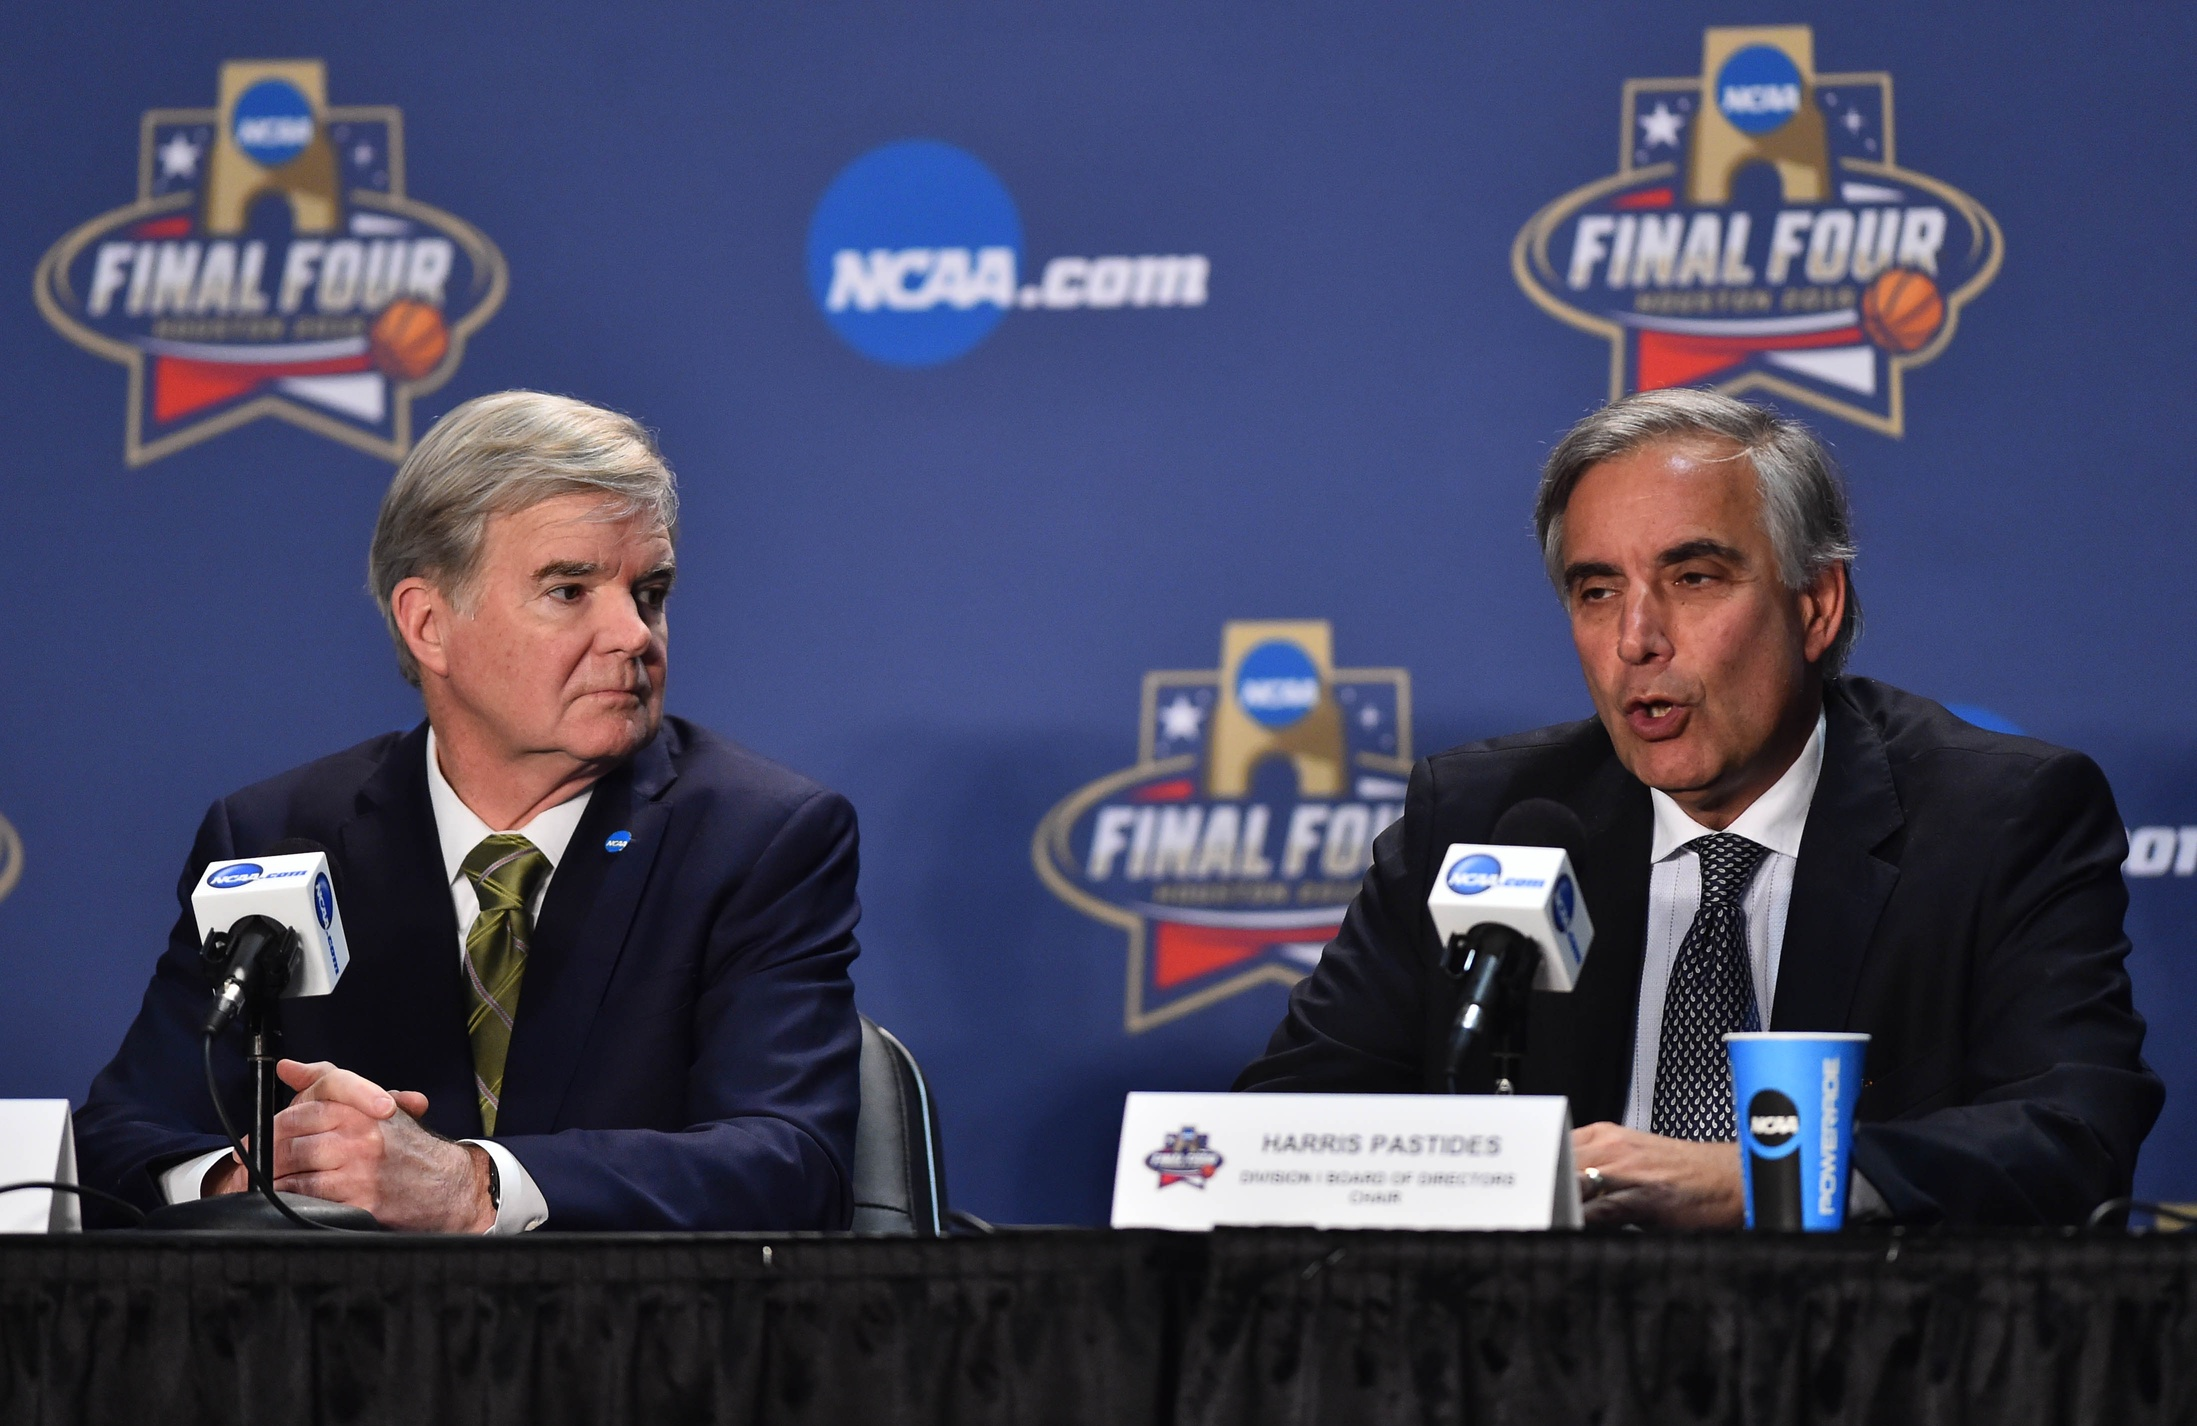 Mark Emmert and Harris Pastides